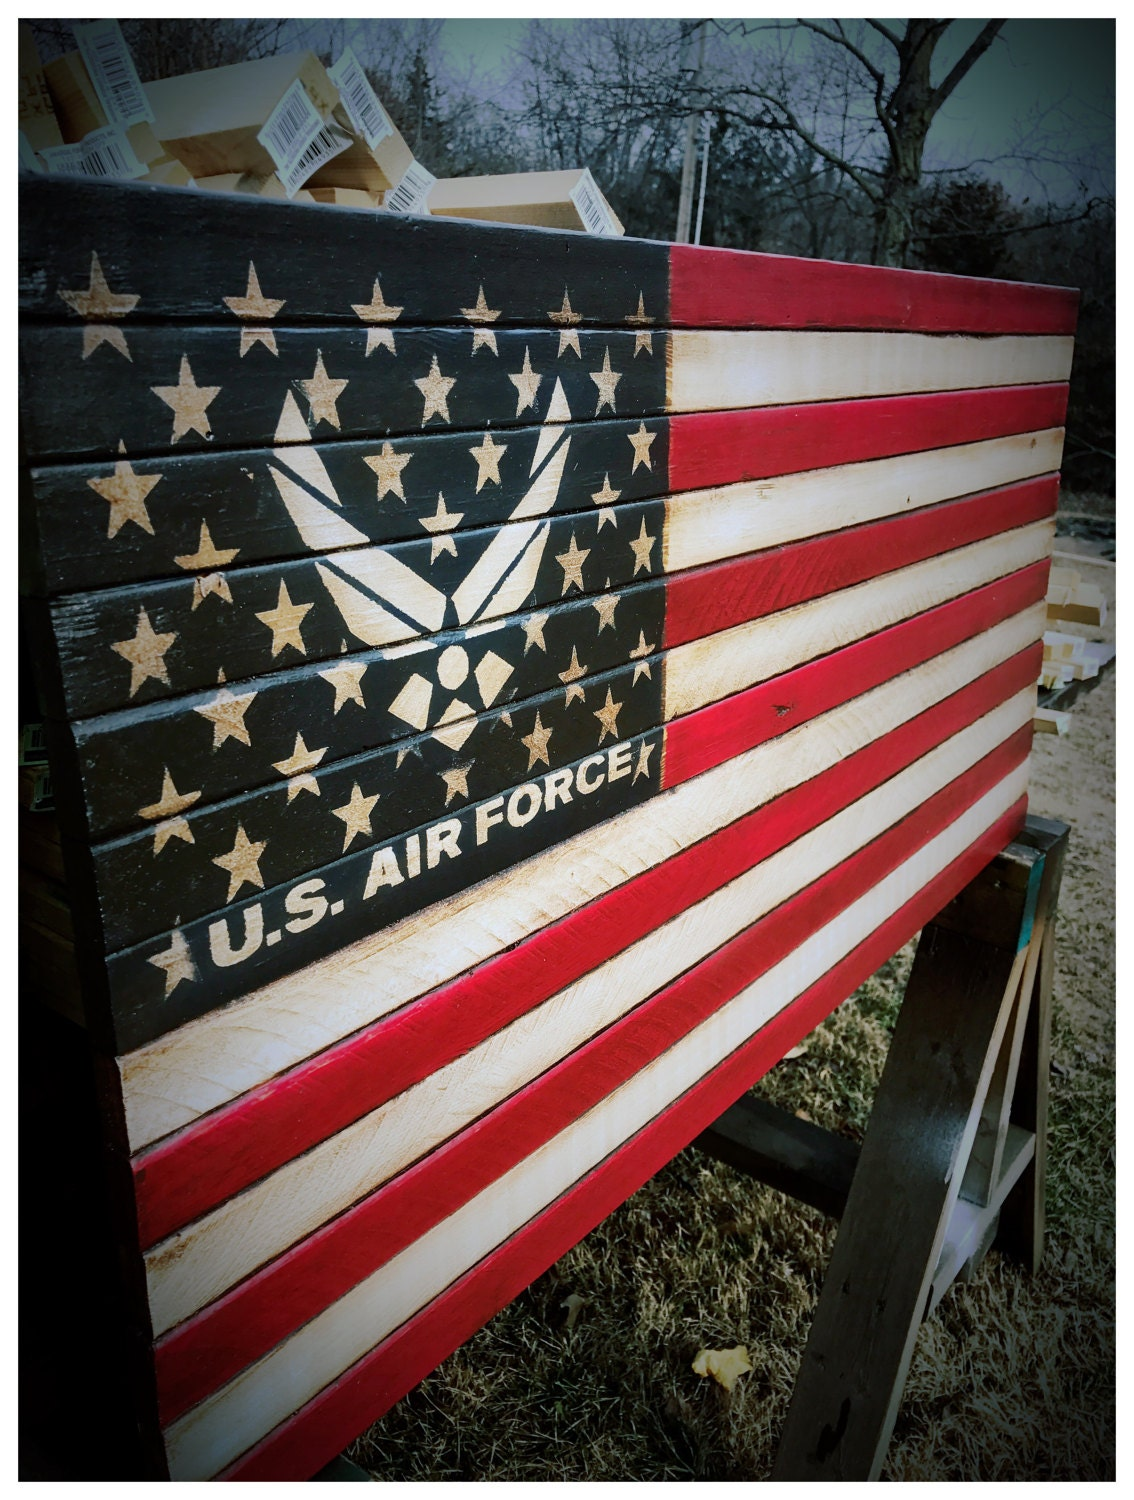 United States Air Force Air Force American Flag US Air Force